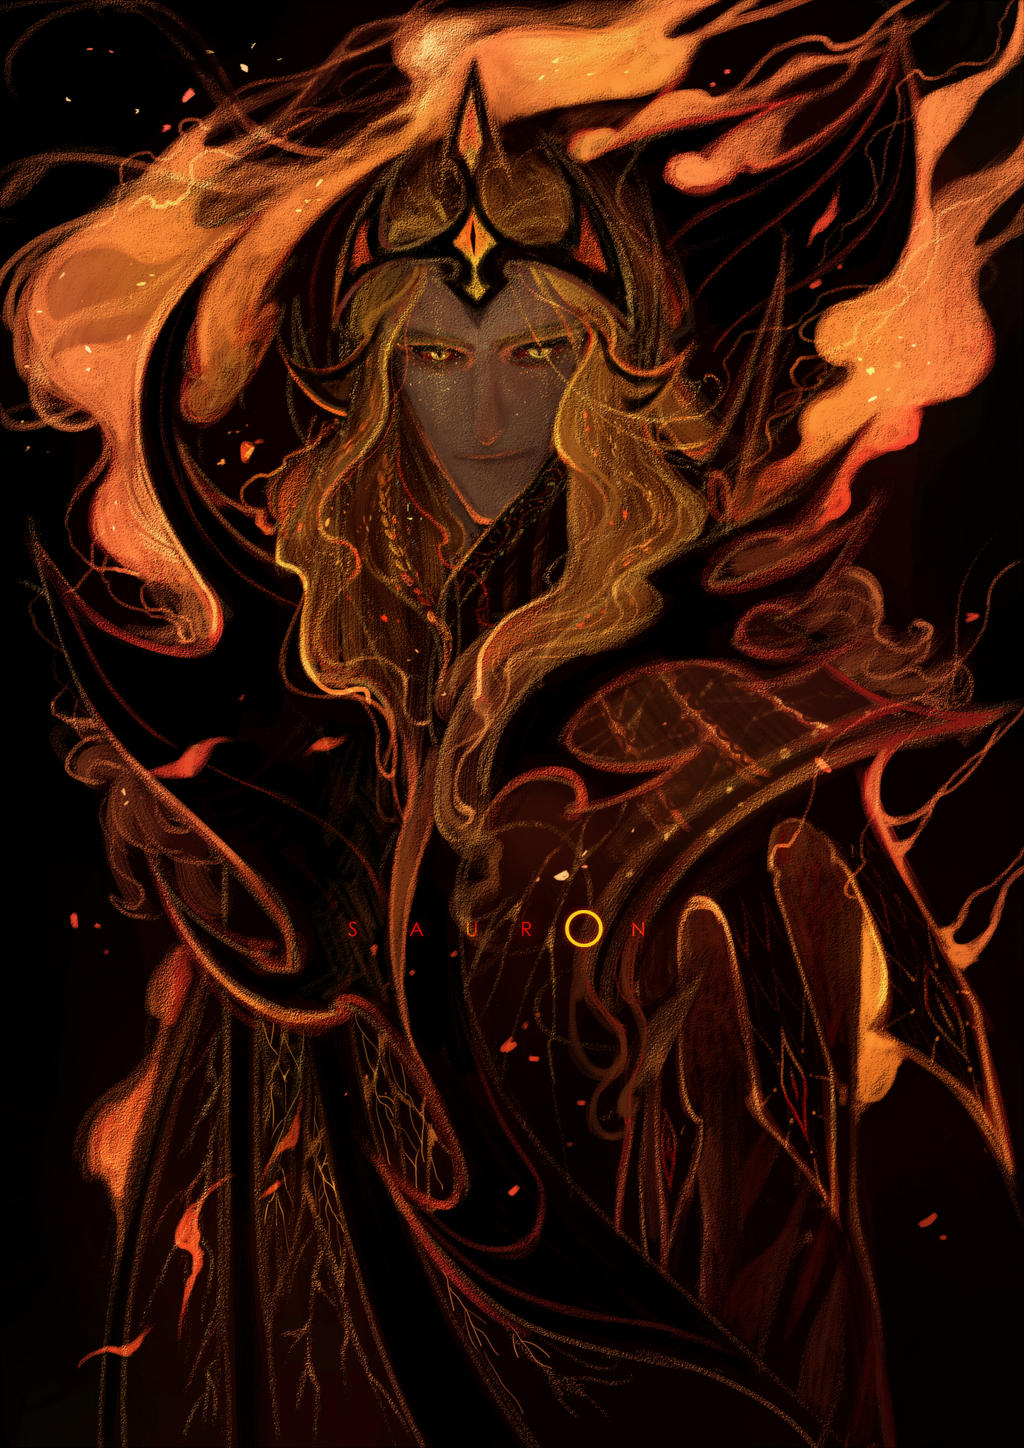 [Silmarillion]Sauron by Wavesheep on DeviantArt